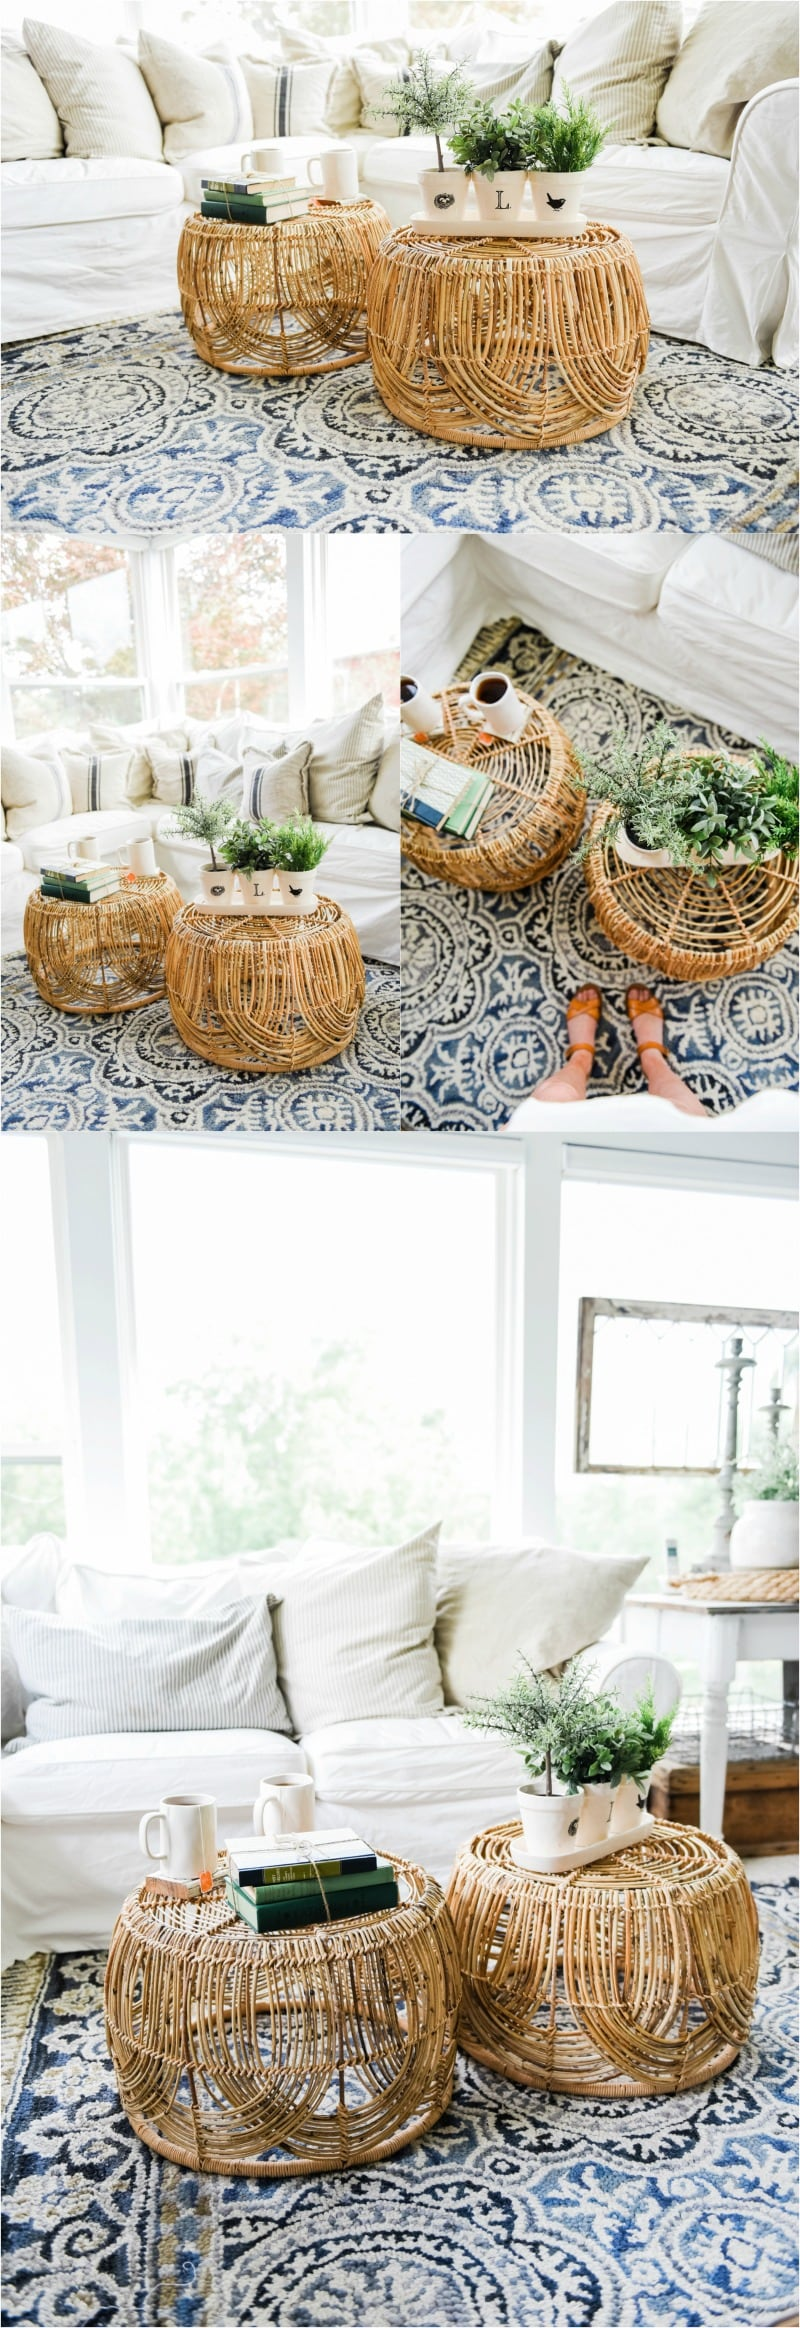 Wicker Coffee Table Sunroom Living Room Design by Liz Marie Blog_0018